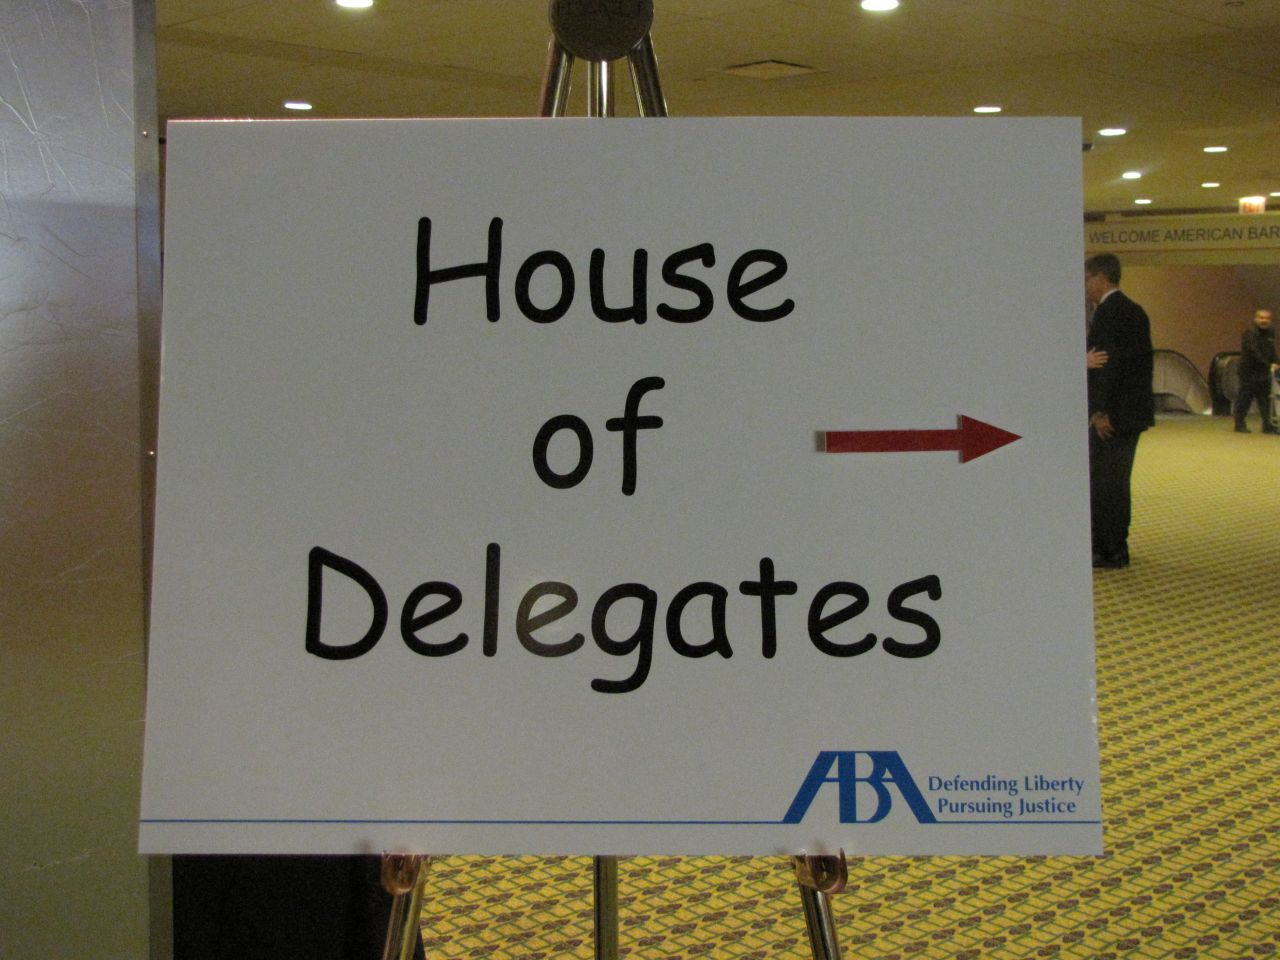 The Illinois delegation heads to the House of Delegates